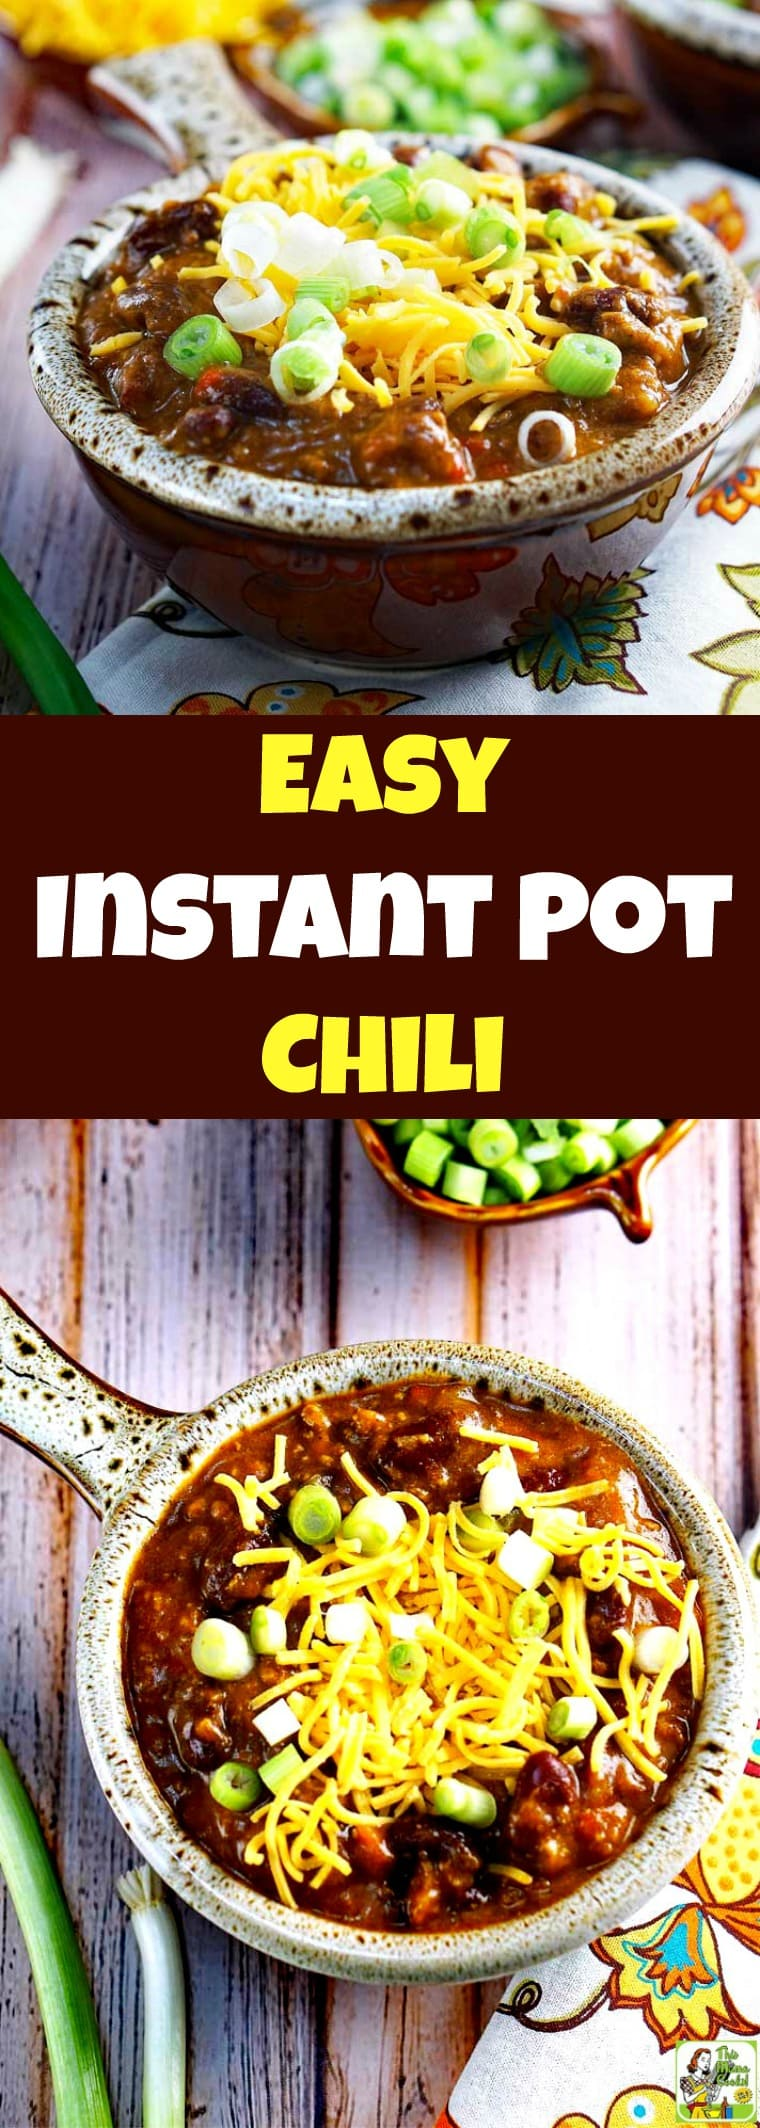 This delicious Easy Instant Pot Chili recipe is perfect for pressure cooker beginners. It tastes like it\'s been cooking for hours, but takes about an hour to make. #recipes #recipeoftheday #easyrecipe #dinnerrecipes #dinner #easydinner #easydinnerrecipes #pumpkinrecipe #pumpkin #chili #beans #instantpot #instantpotrecipes #instantpotrecipeseasy #instantpotchili